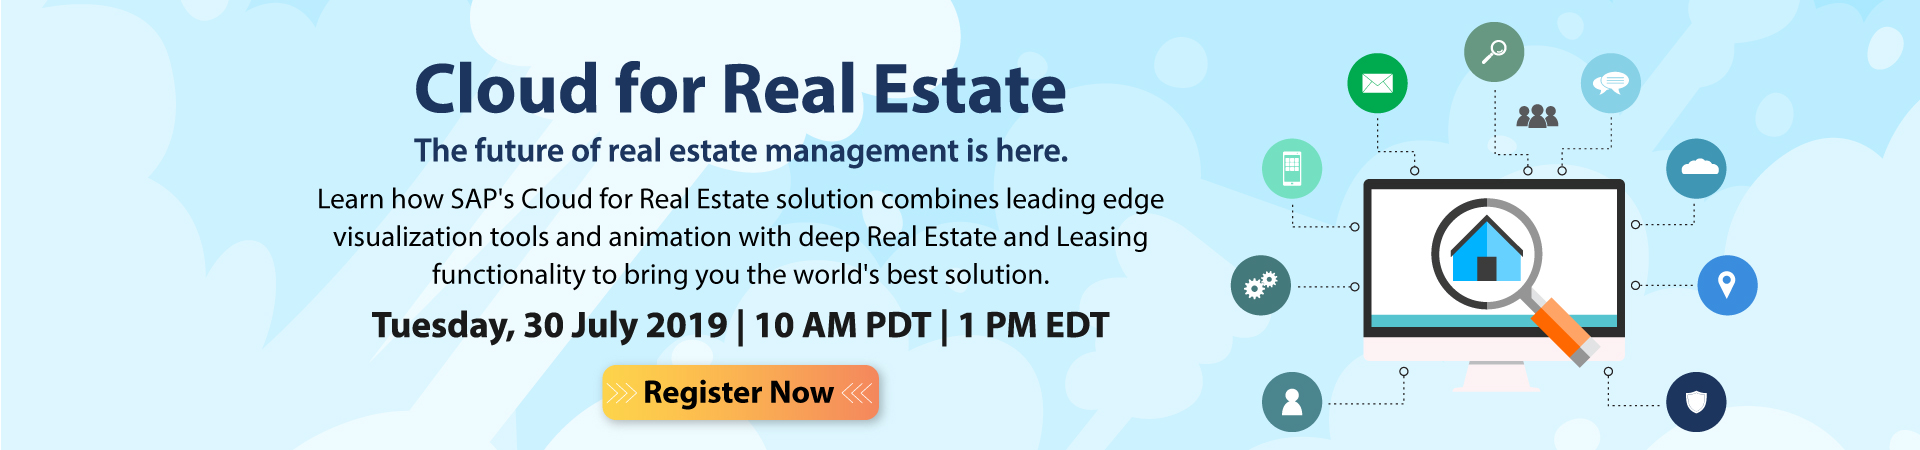 Cloud for Real Estate